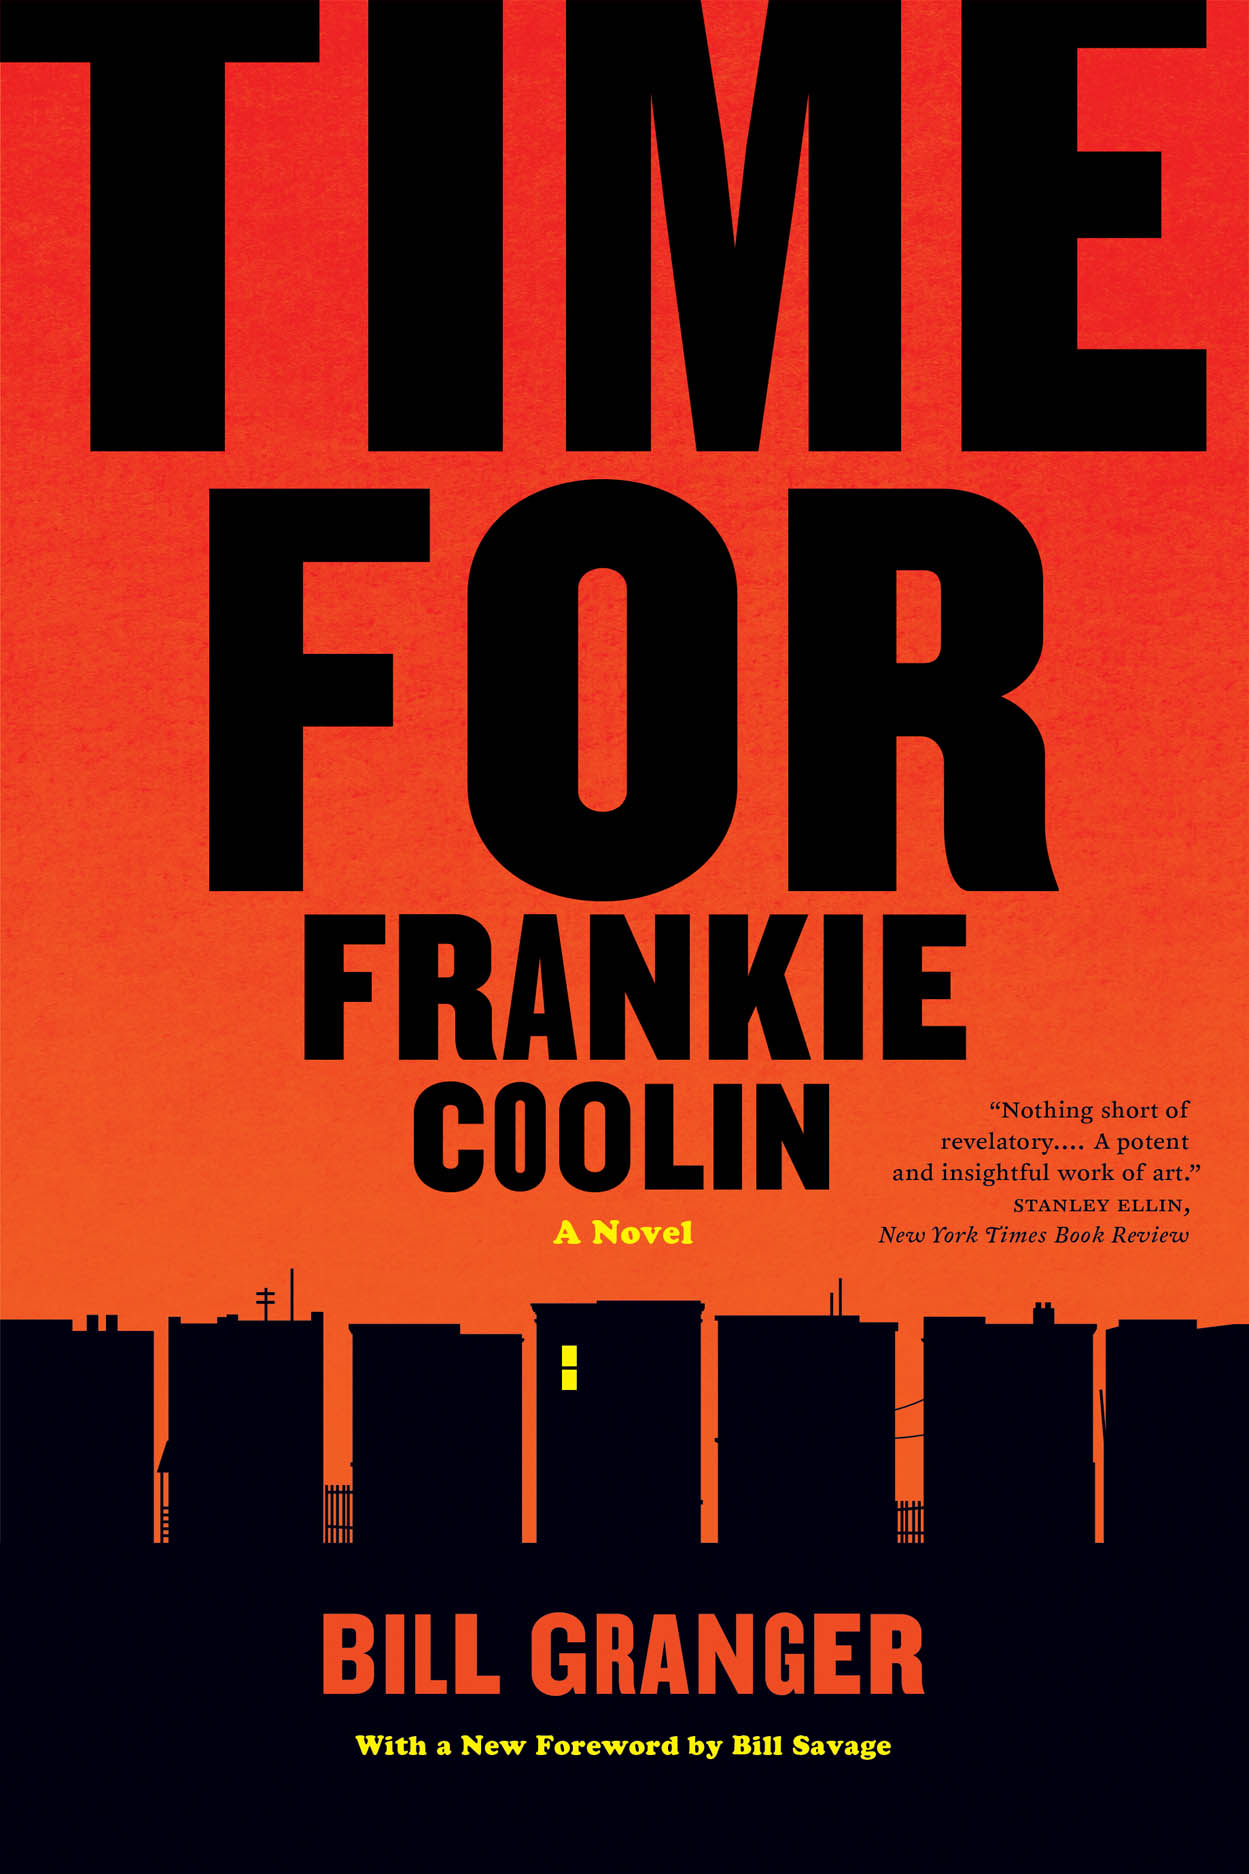 Time for Frankie Coolin: A Novel